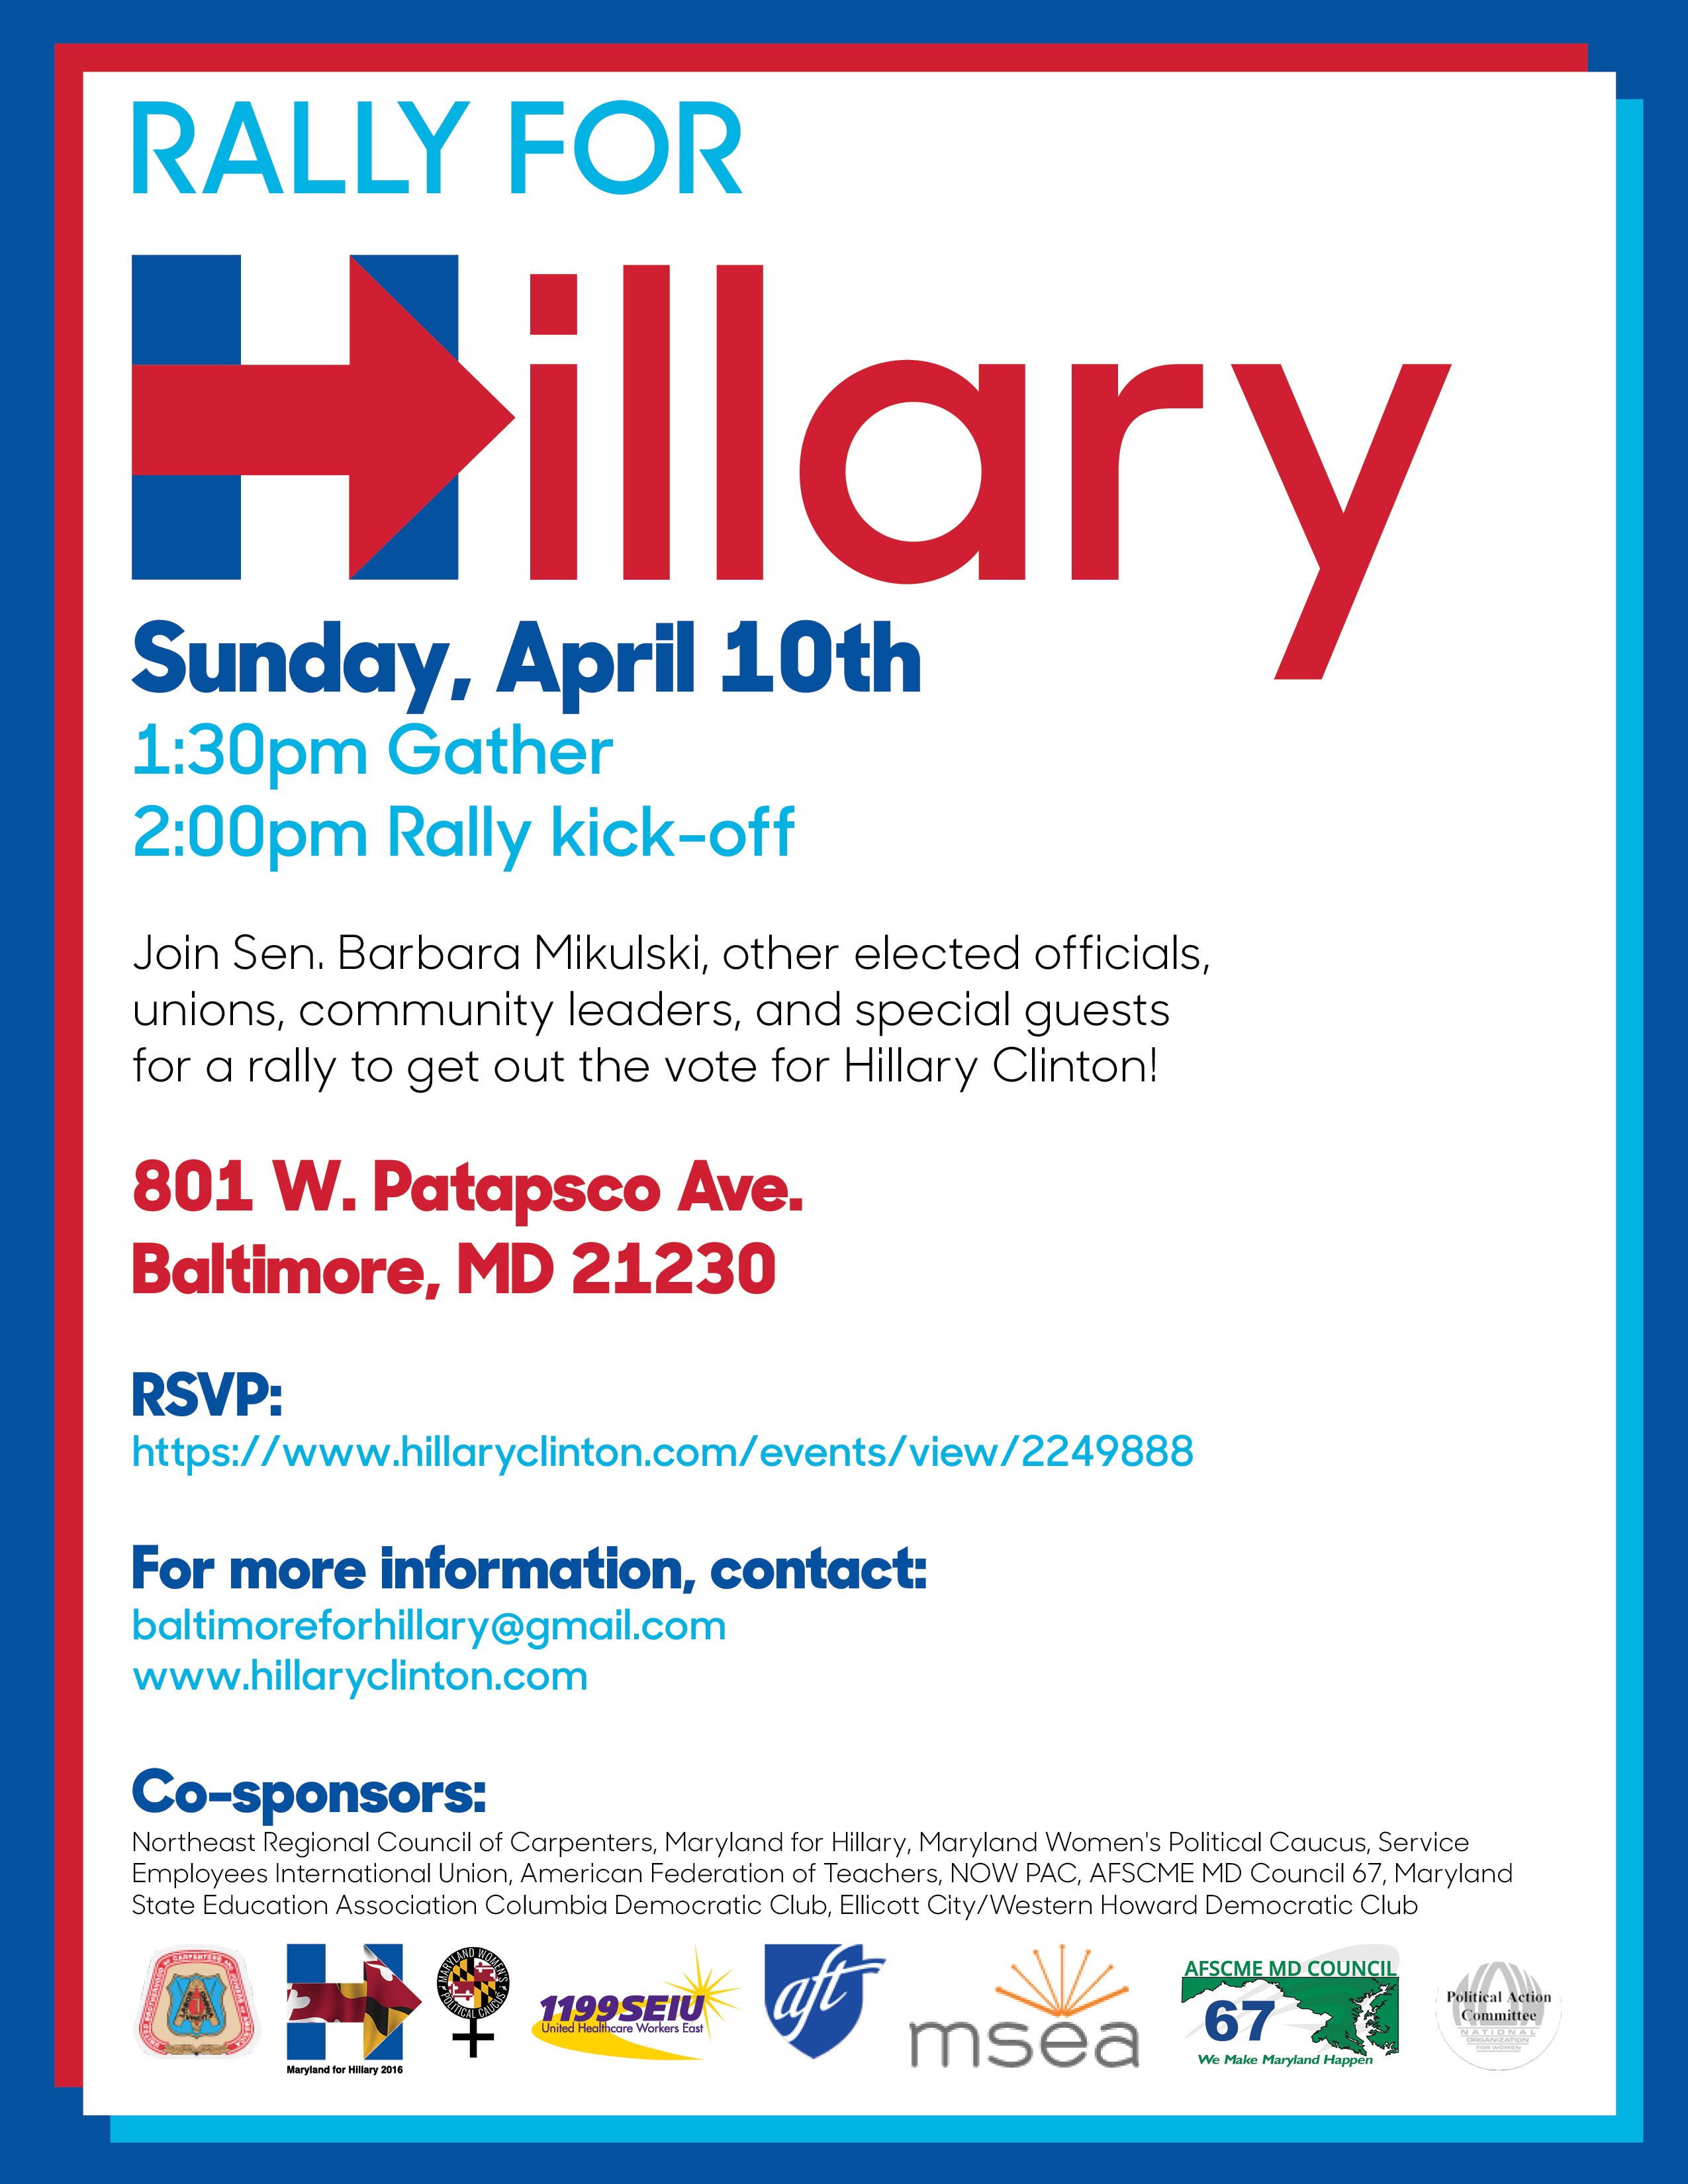 Rally for HIllary, Sunday, April 10th